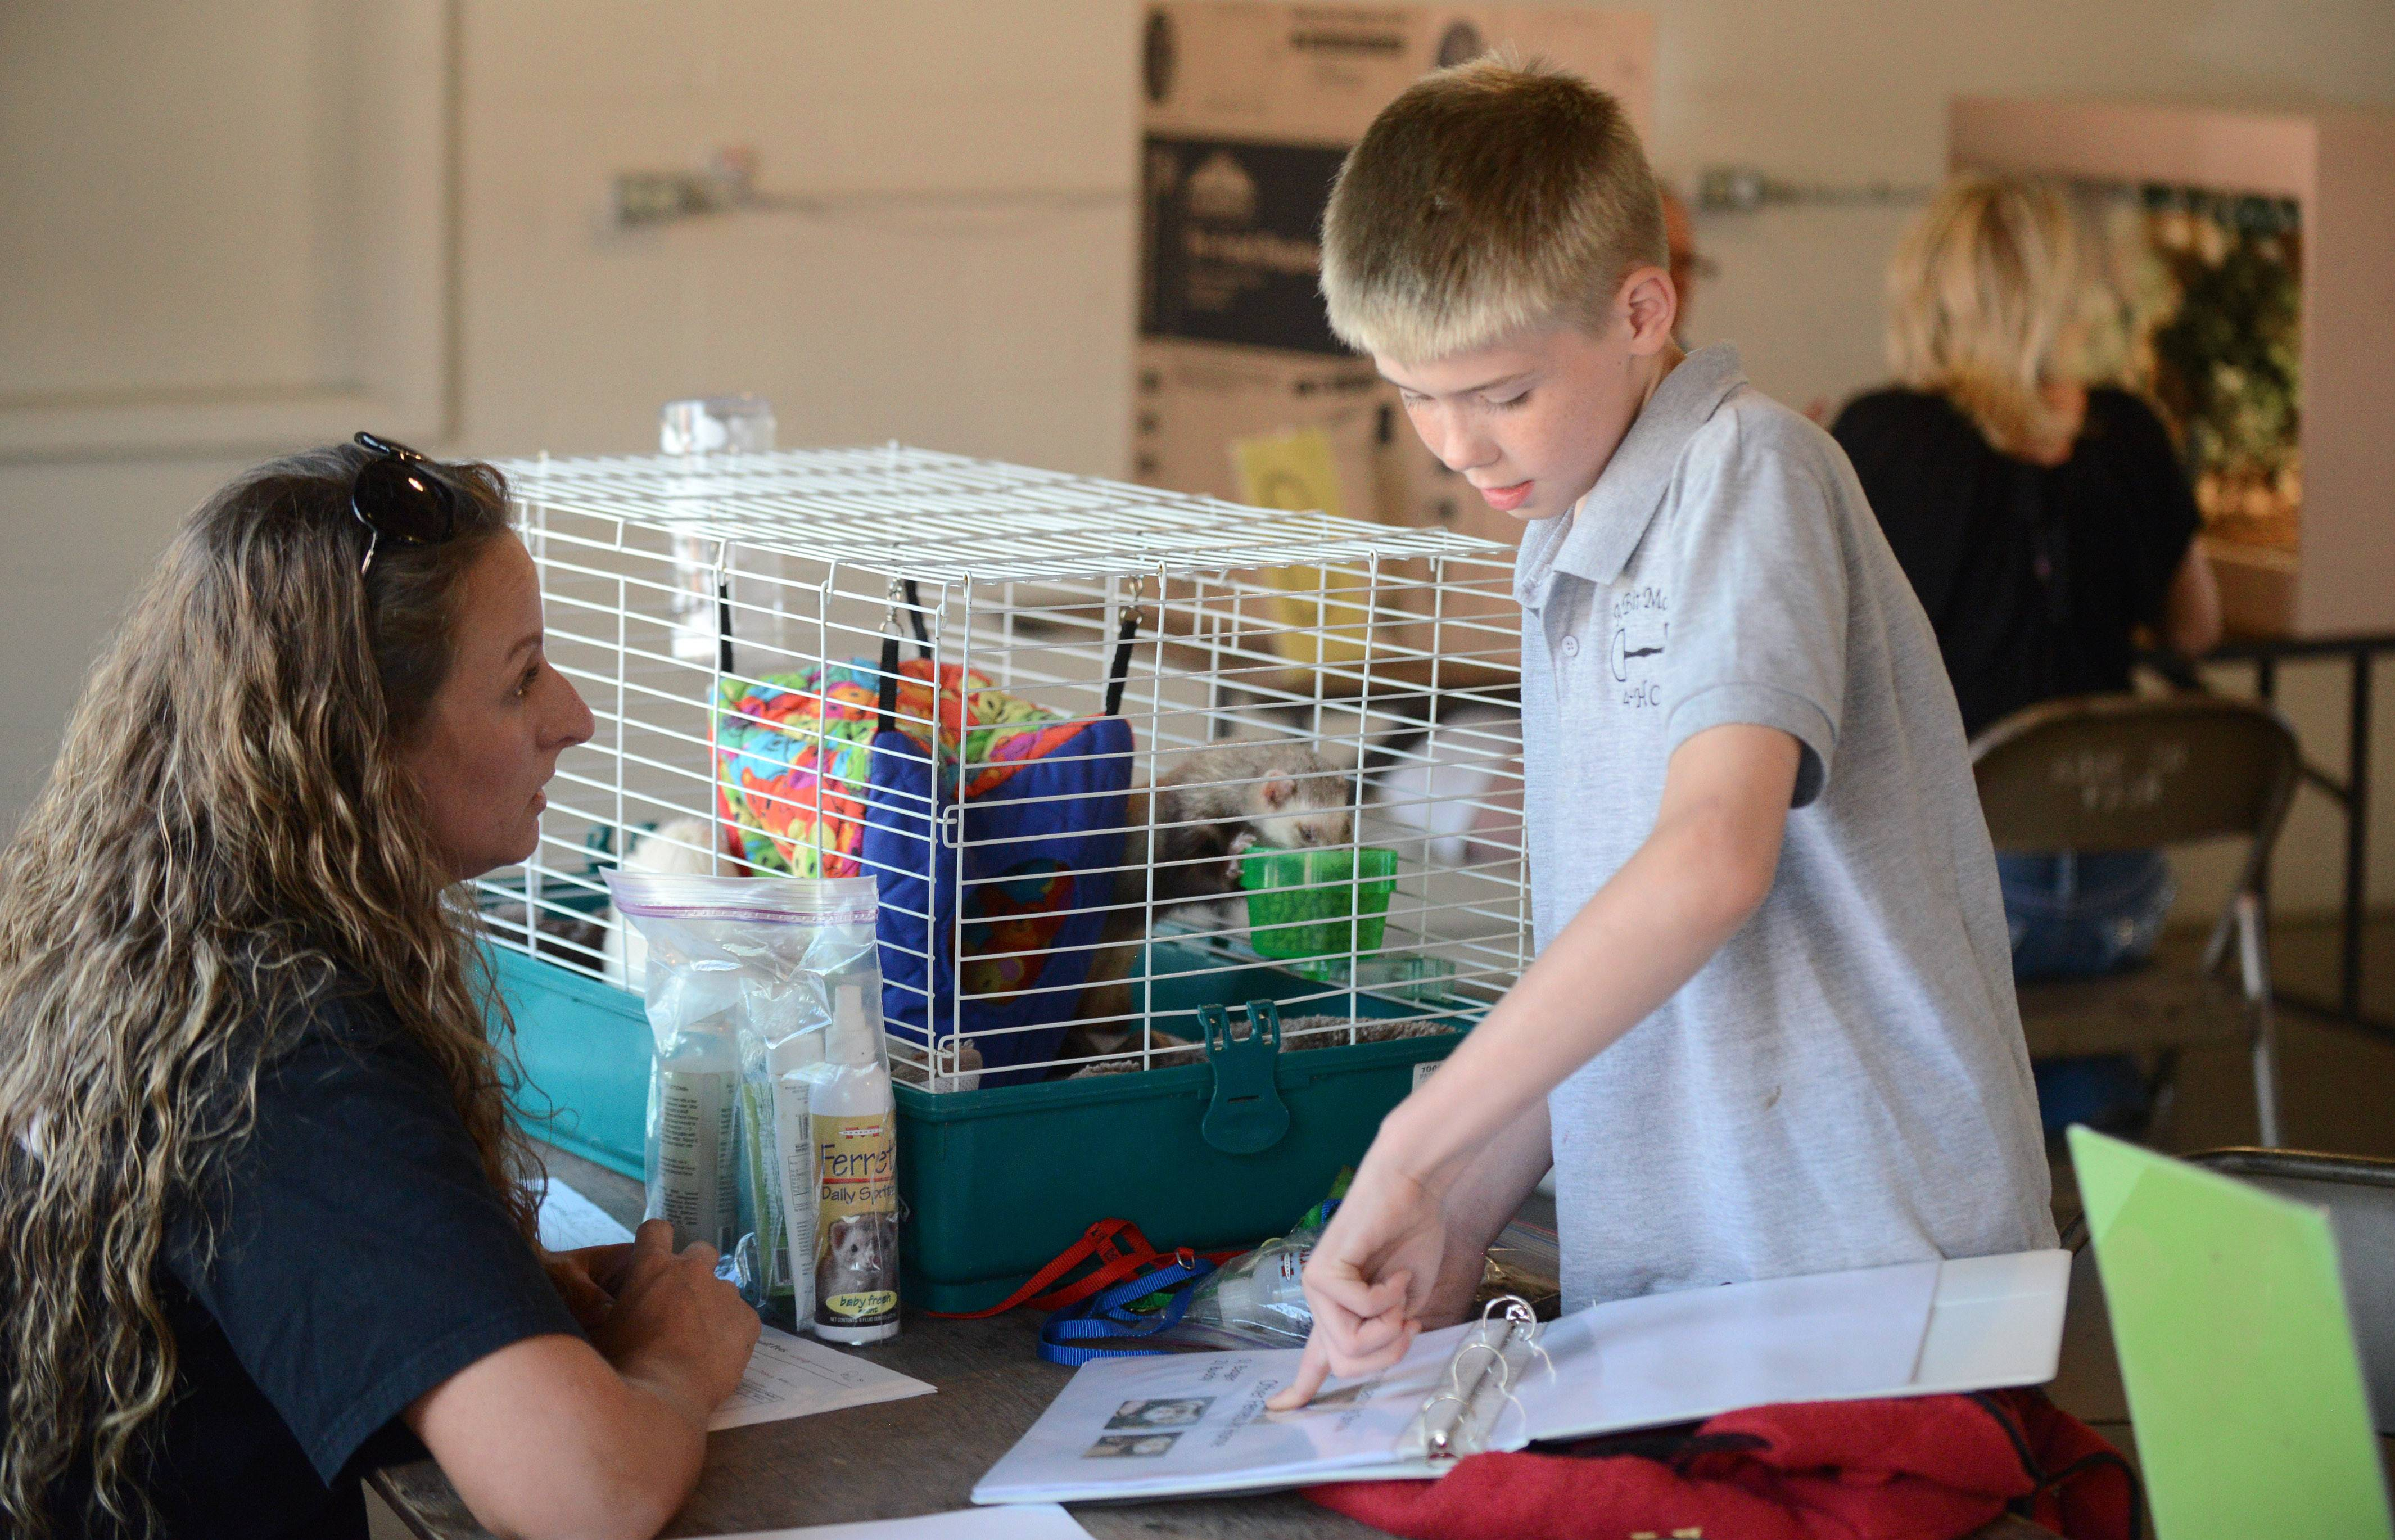 Zachary King, 10, of South Elgin presents two of his ferrets, Megatron and Mr. Dobbs, along with a detailed binder on ferret care to Kane County 4-H Small Pets show judge Ashley Kaminski, also of South Elgin, Tuesday at the Kane County Fairgrounds in St. Charles. Zachary is a member of the A Bit More 4-H Club out of Hampshire and won blue ribbons for his expertise on ferrets and their care in the competition.